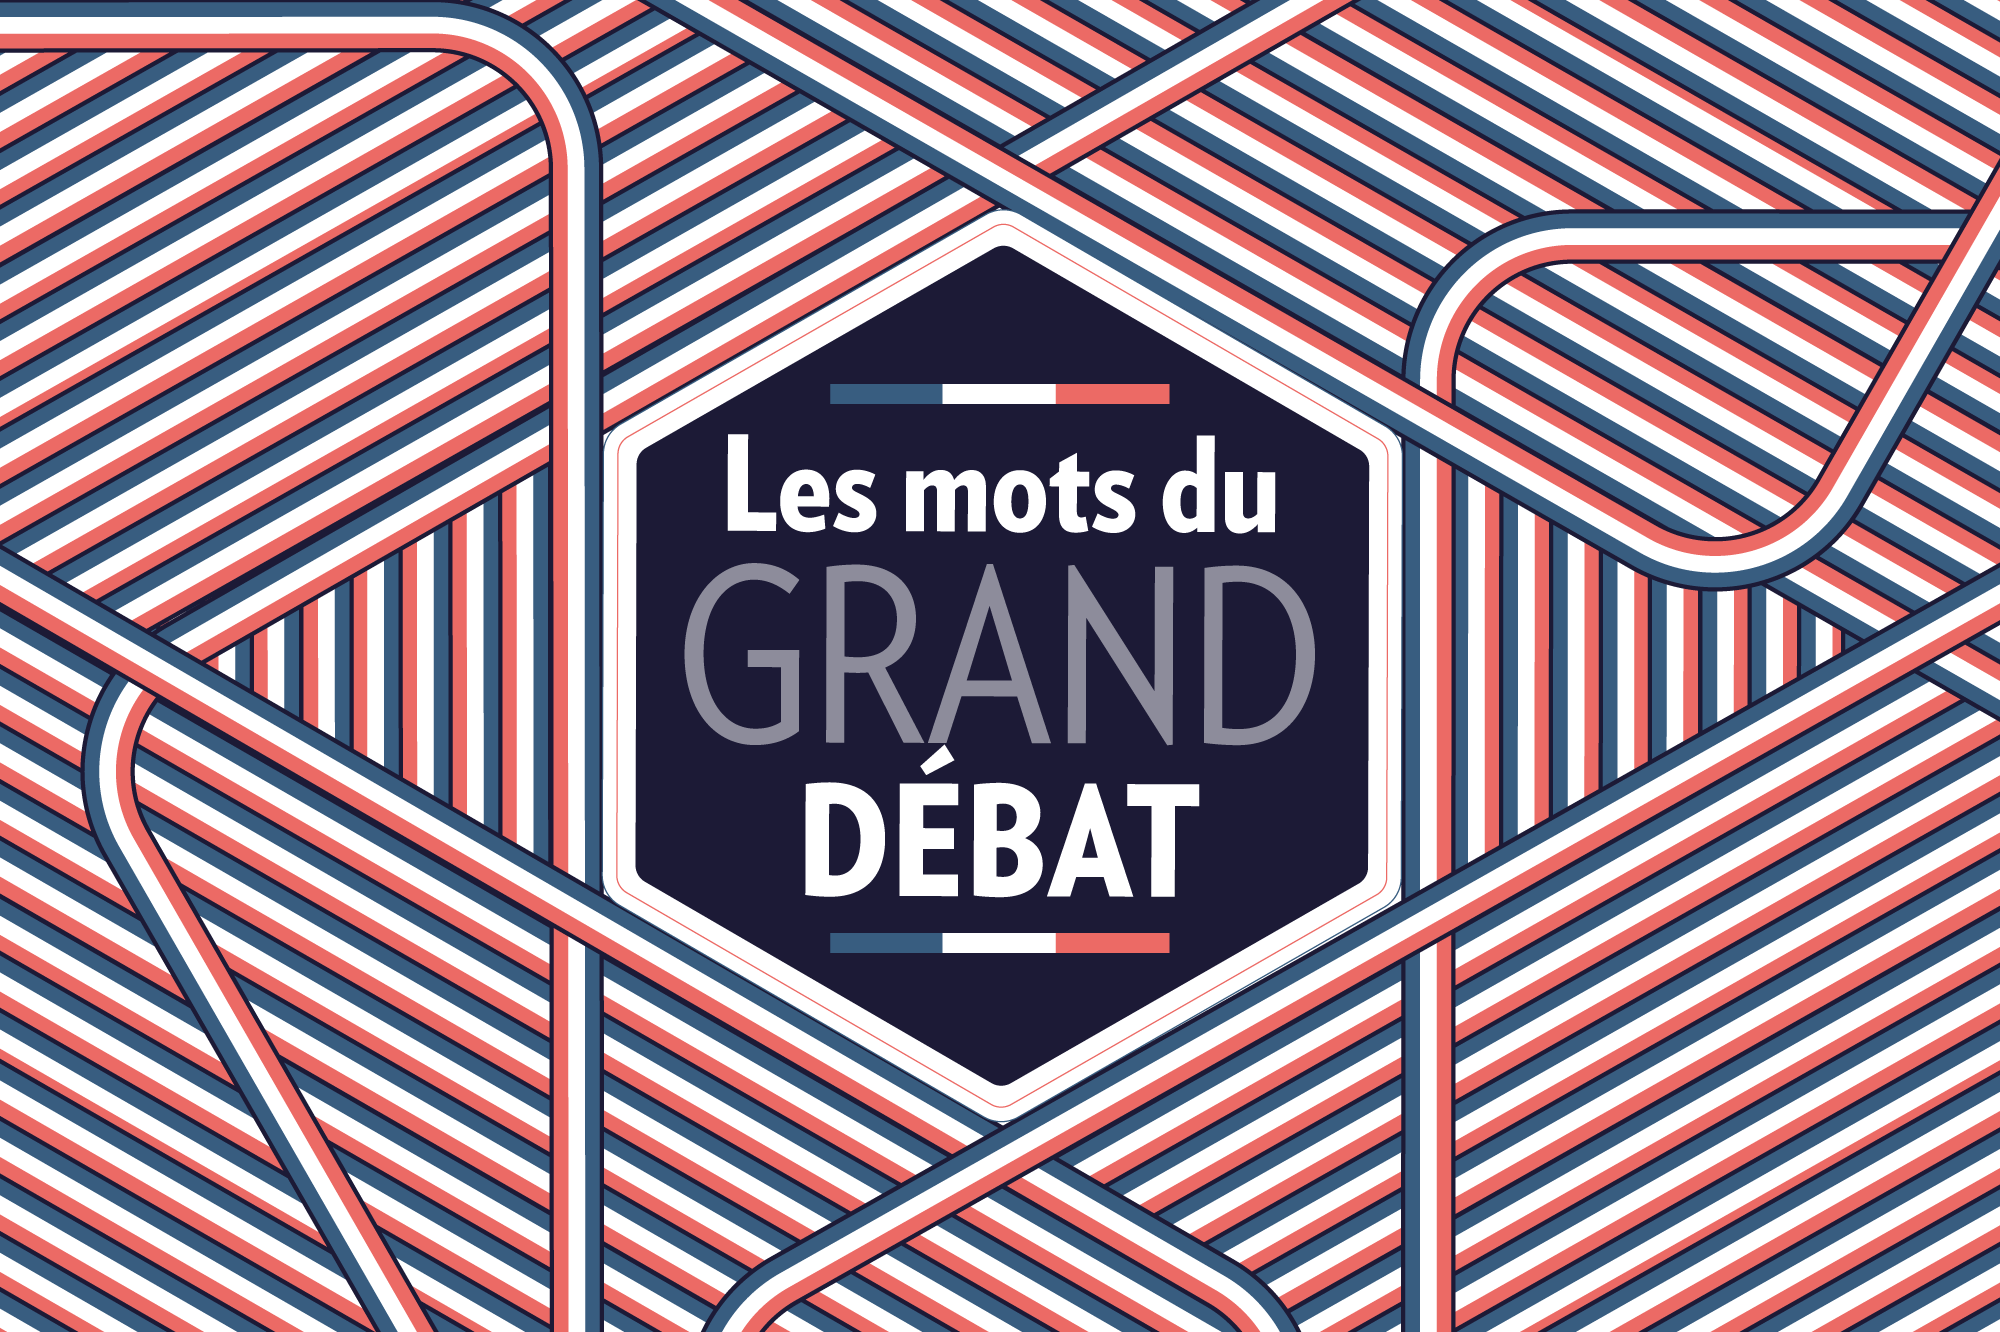 Grand débat national : notre analyse exclusive